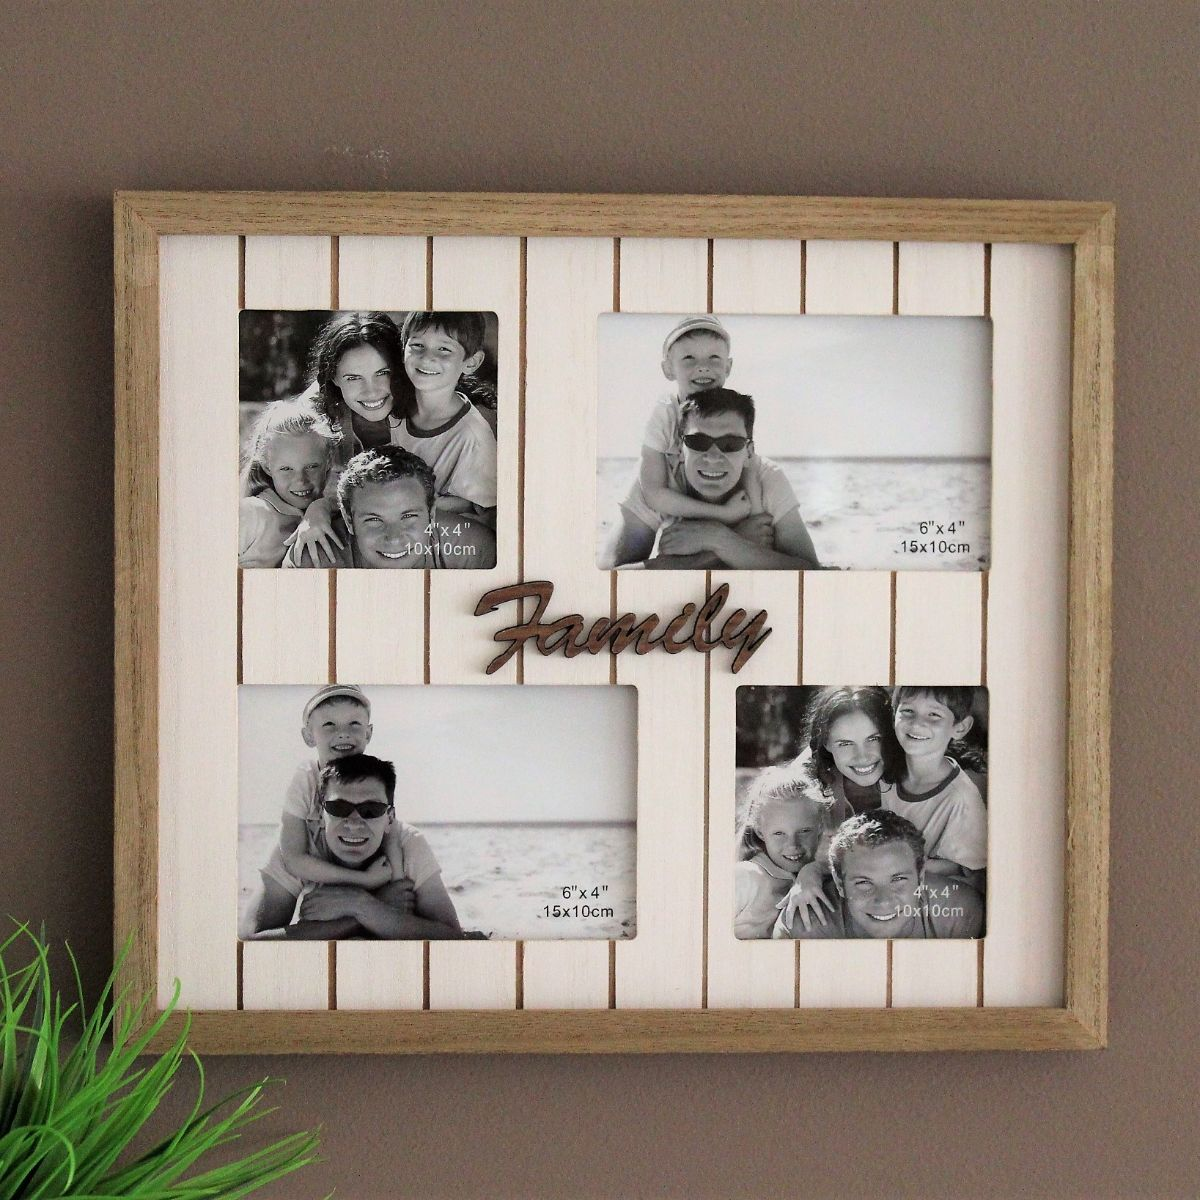 4 In 1 Multi Collage Wooden Window Photo Frame Dalisay